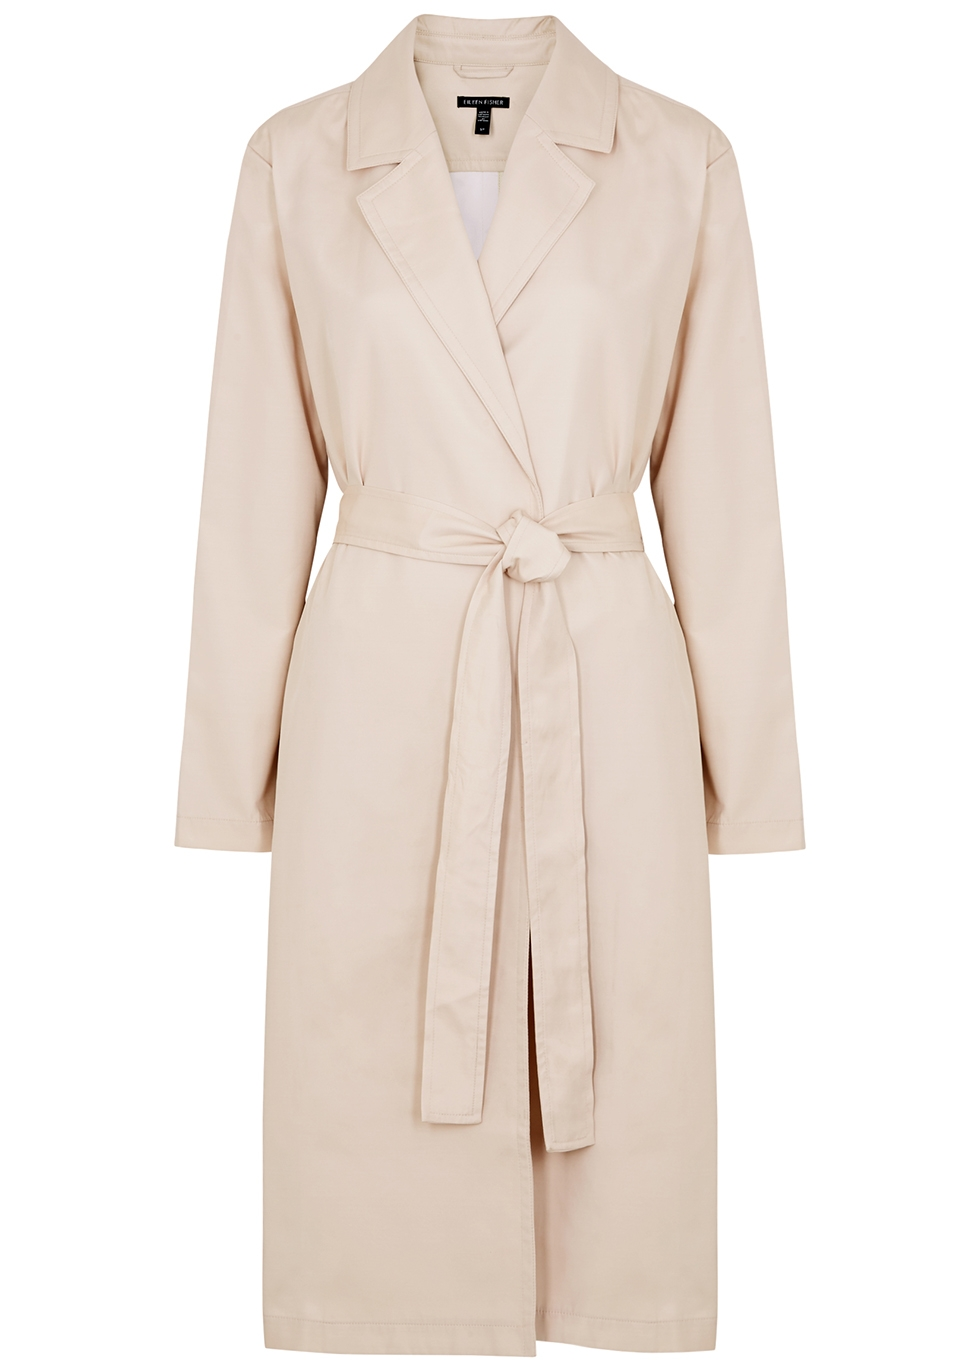 Ecru belted twill trench coat